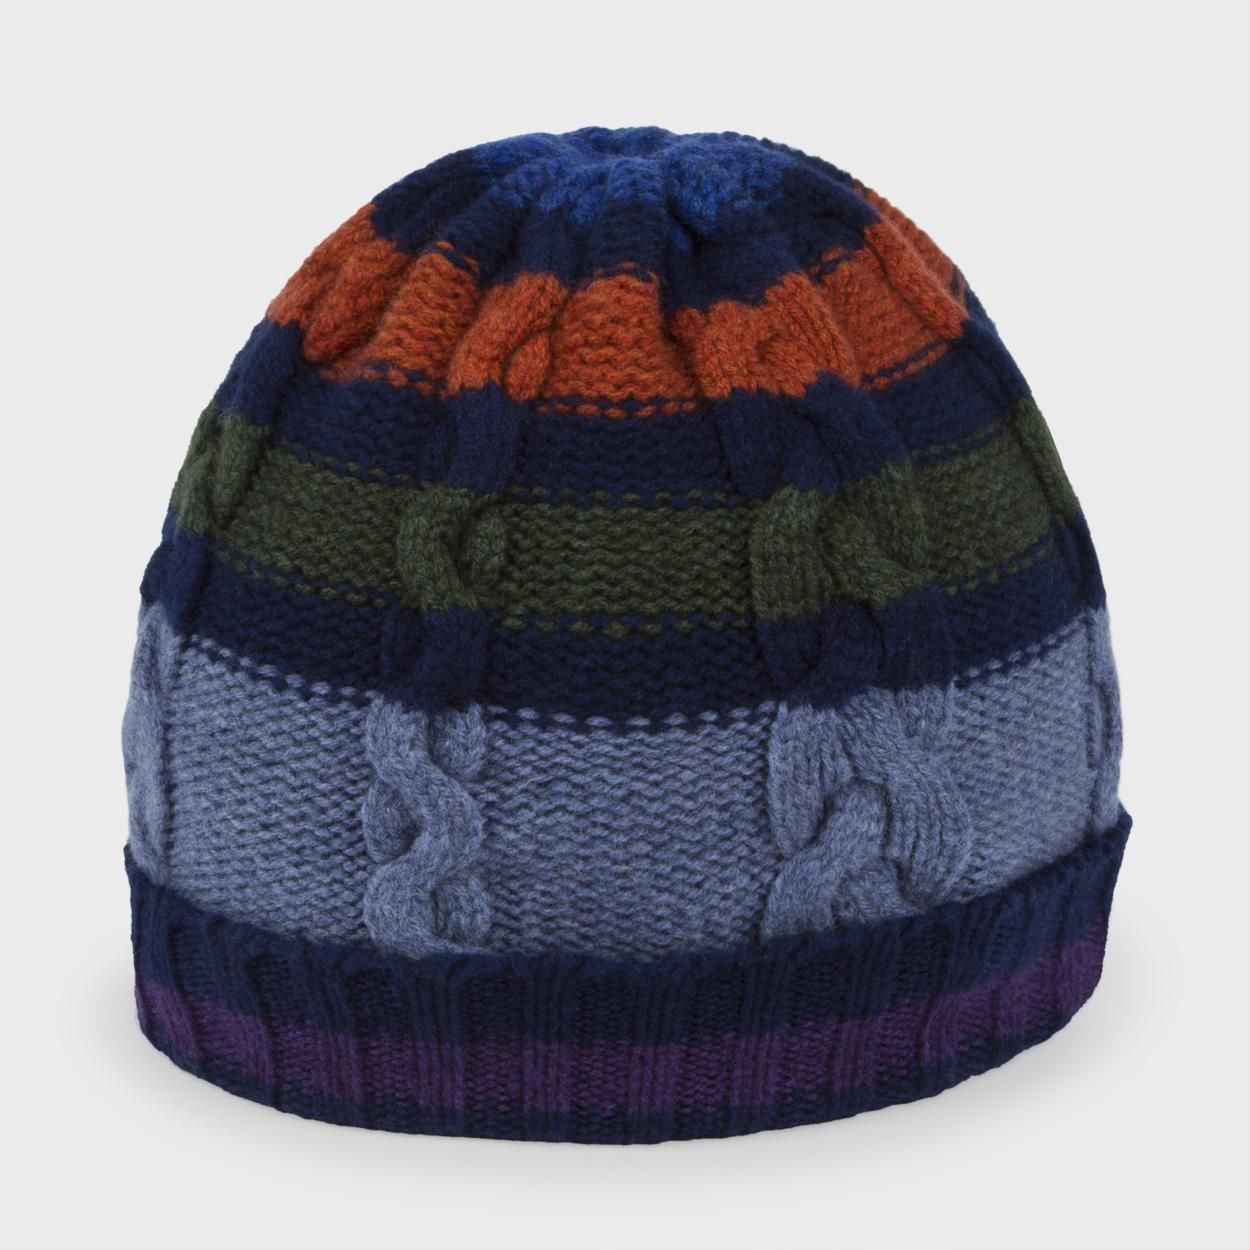 Paul Smith Men\'s Hats | Navy Striped Cable Knit Wool Beanie Hat | My ...